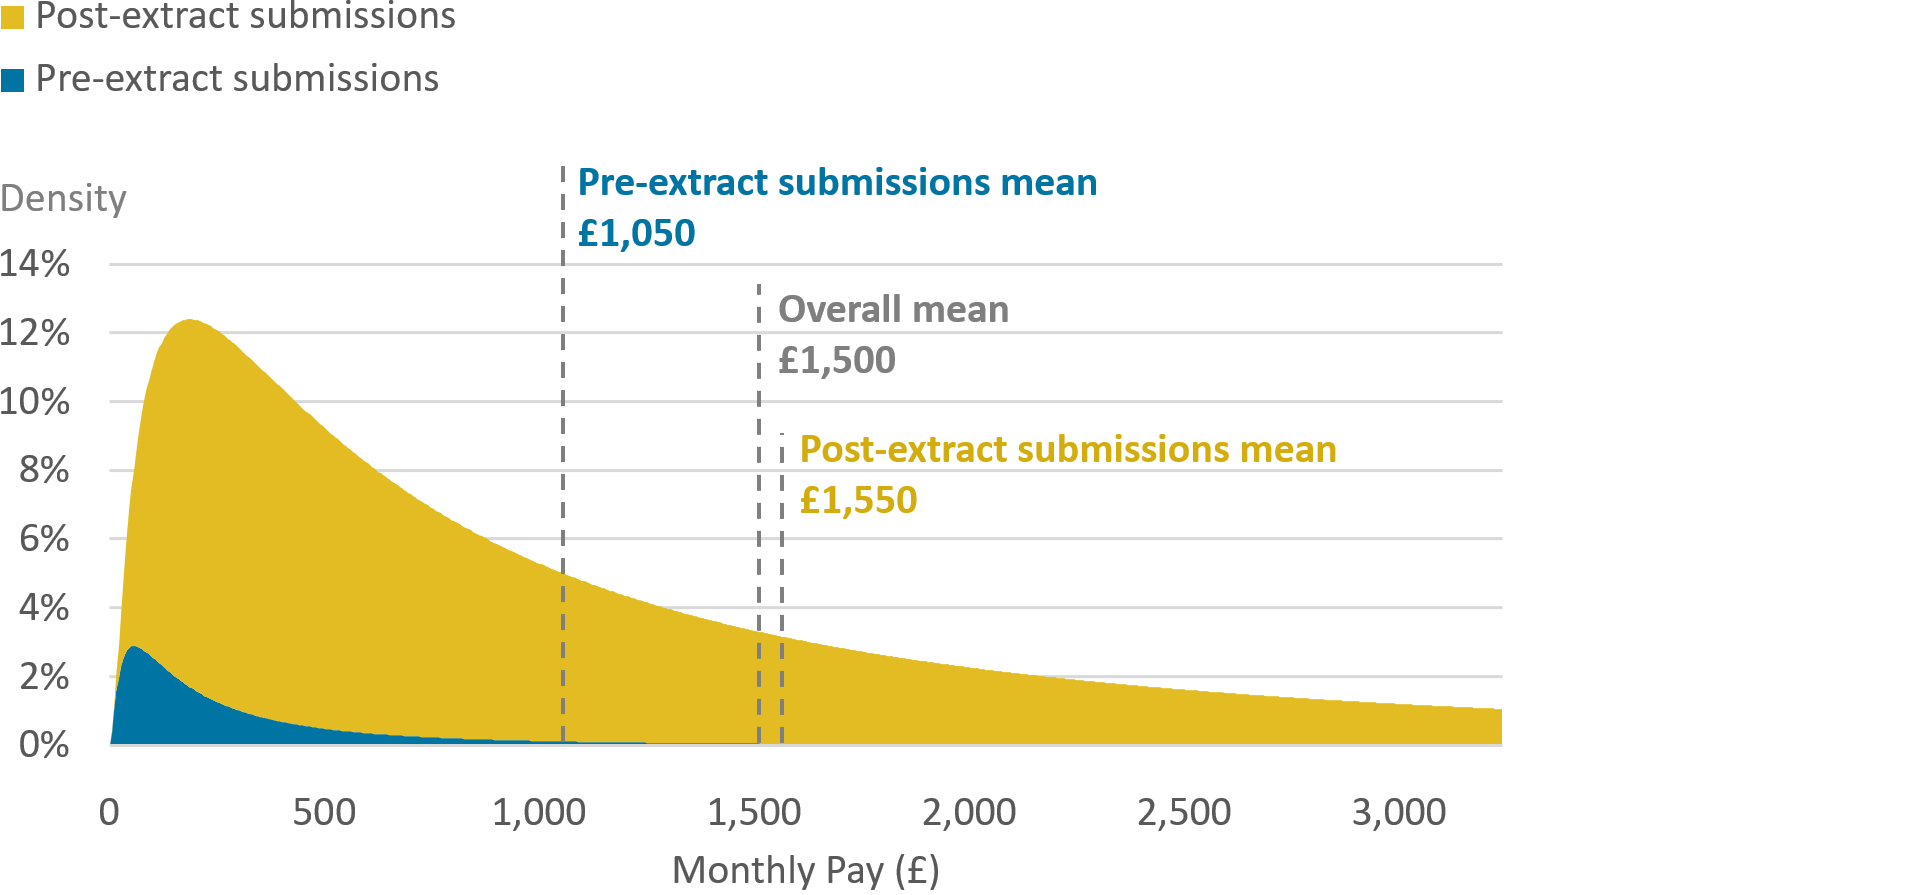 Example decomposition of the distribution of pay for new jobs, by whether the submission is early or not.